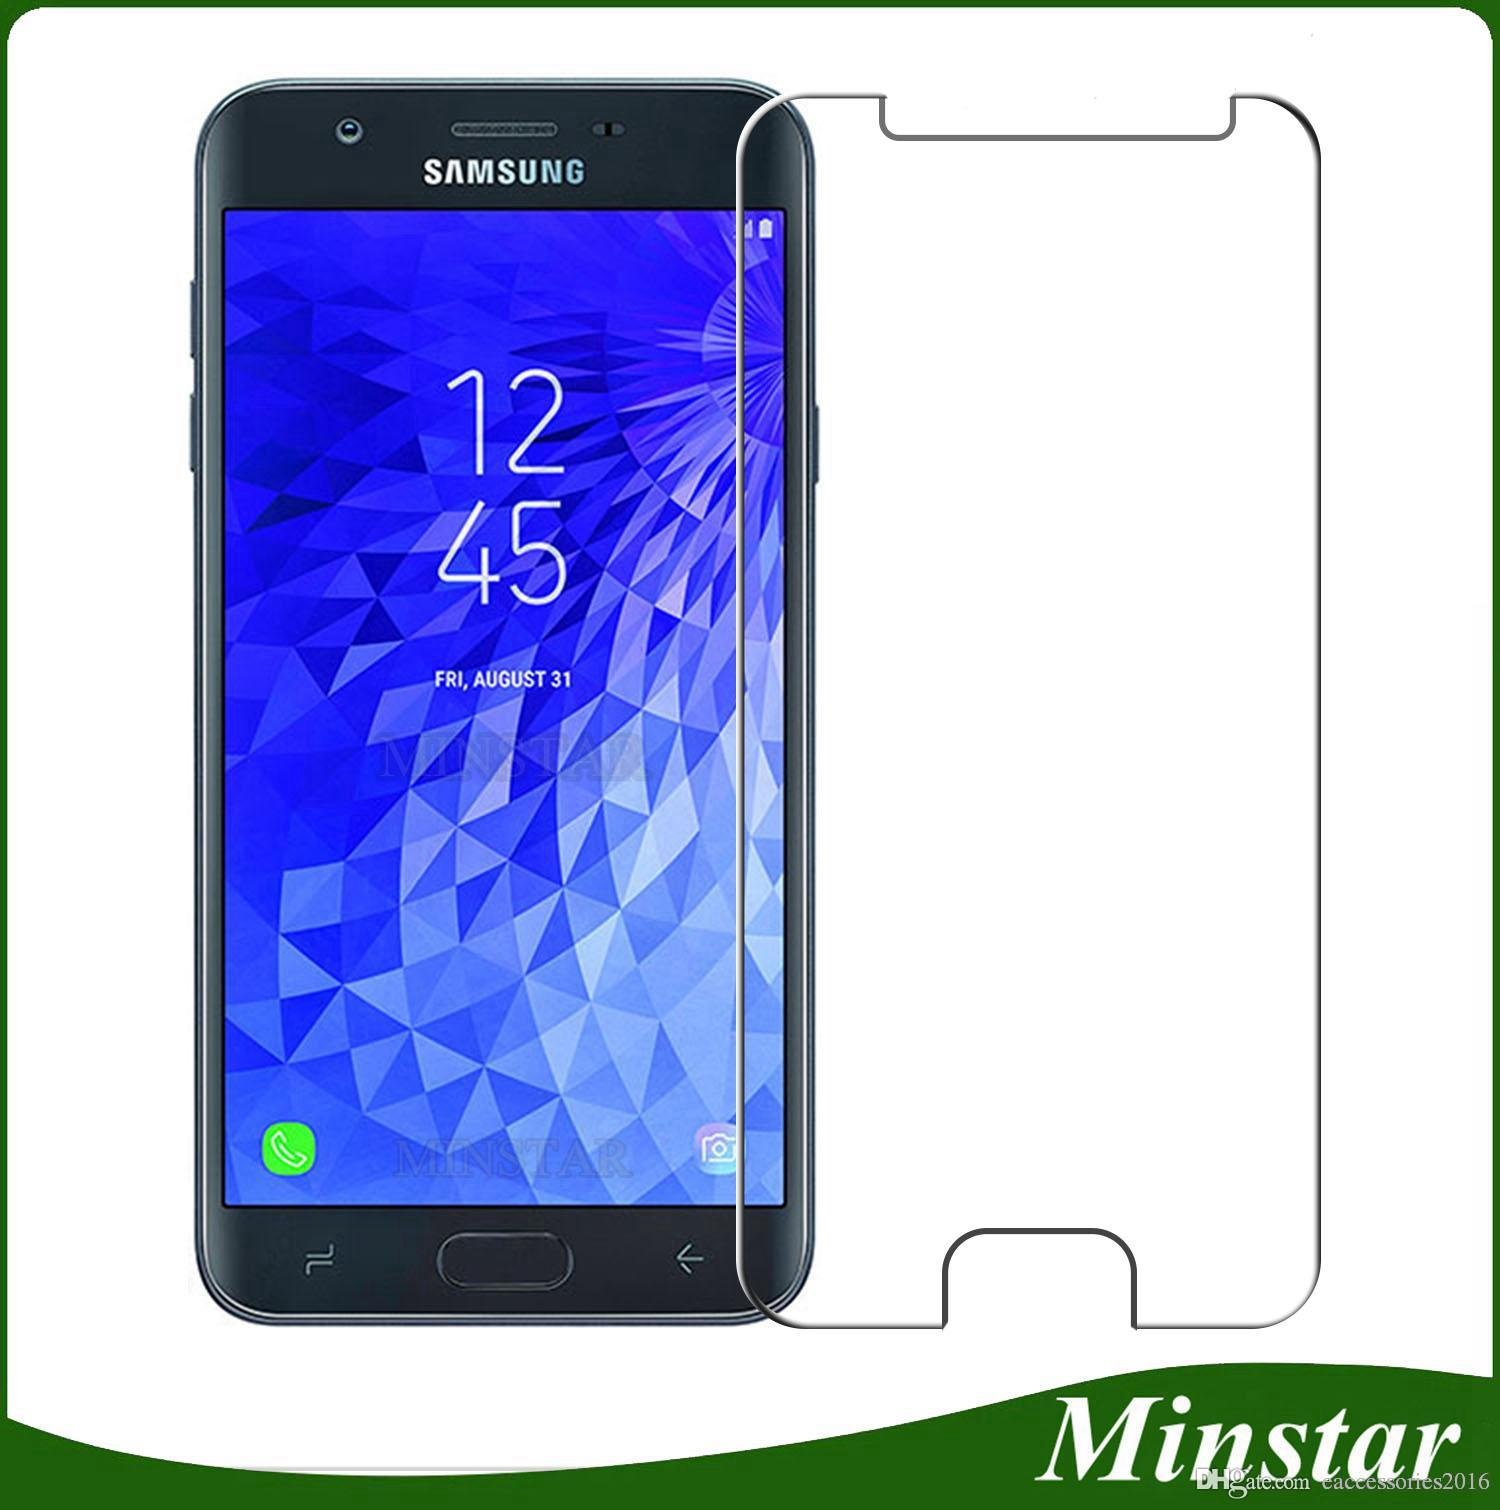 Newest Basic Tempered Glass For Samsung Galaxy J3 Achieve Star 2018 J337 J7 Refine Crown J737 Boost Mobile Metro Pcs Clear Screen Protector Mobile Screen